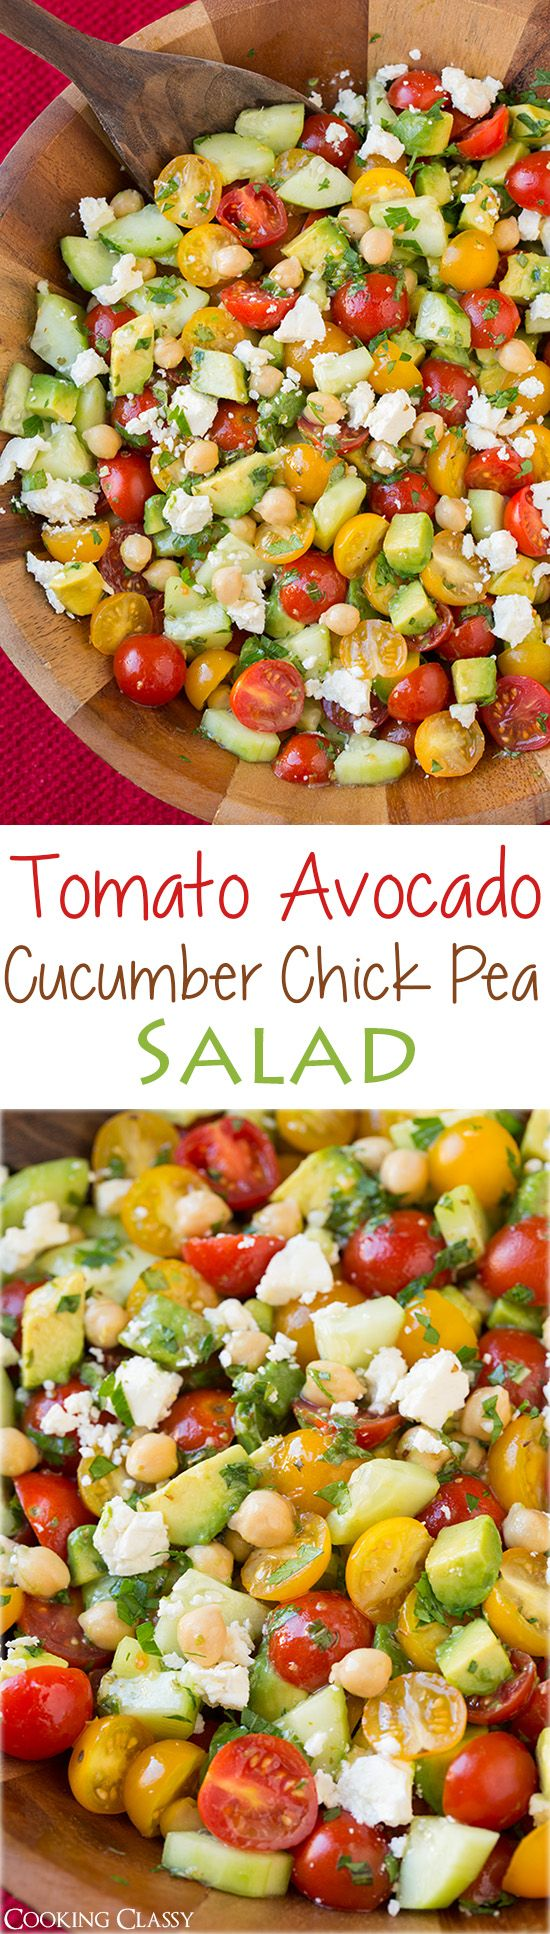 Tomato Avocado Cucumber Chick Pea Salad with Feta and Greek Lemon Dressing - LOVED the flavor of this salad! I ate two bowls of it for lunch!: